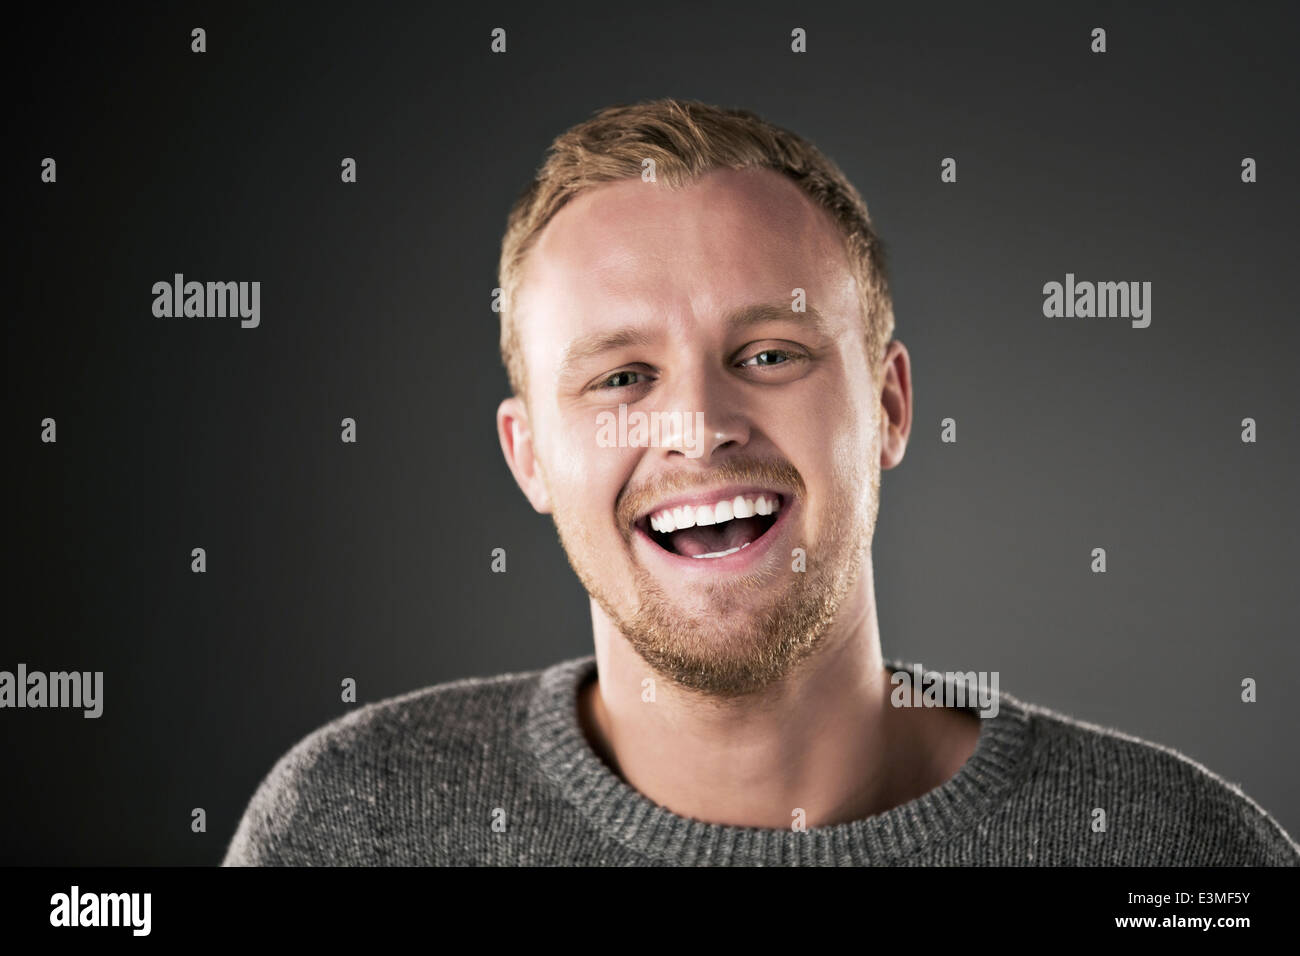 Portrait of laughing man Photo Stock